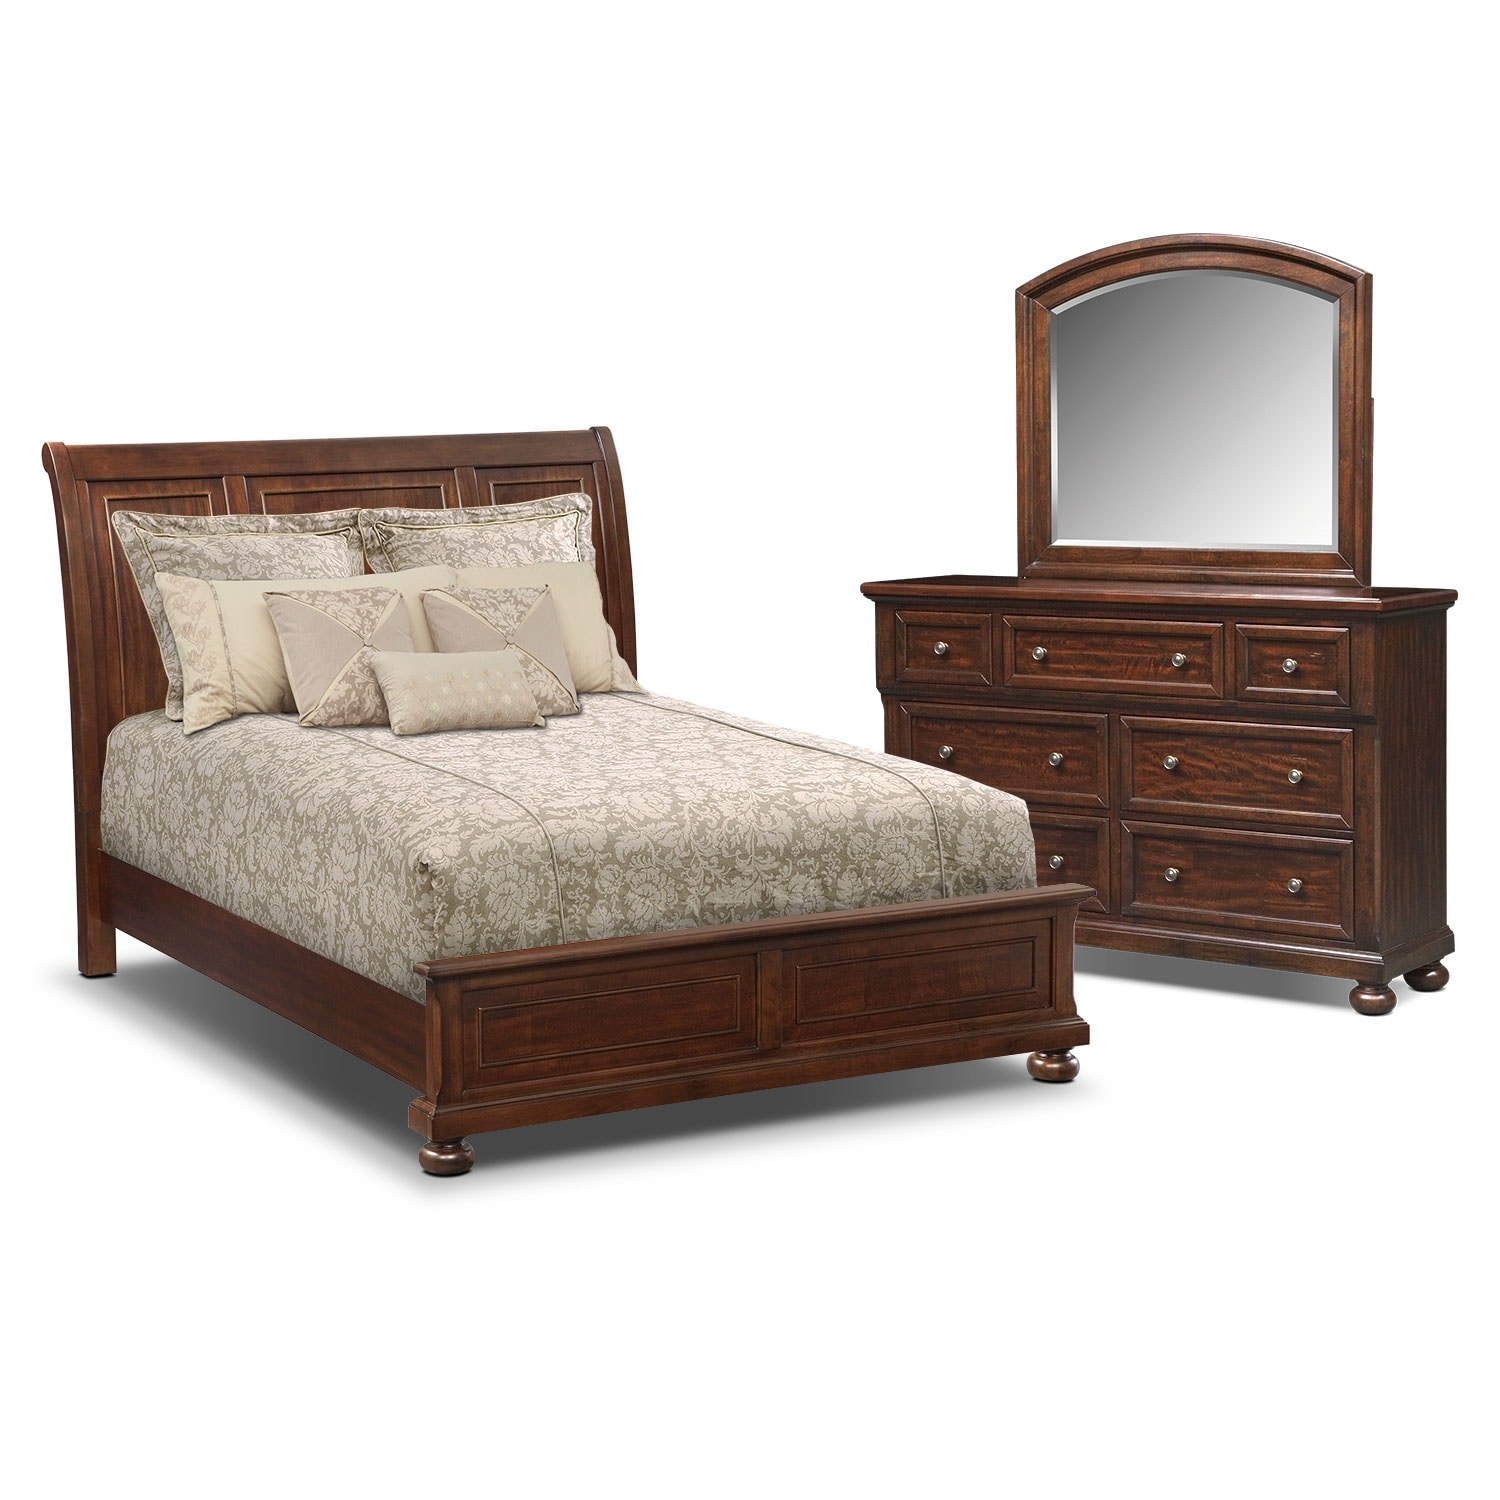 The hanover panel bedroom collection cherry american for American furniture bedroom furniture